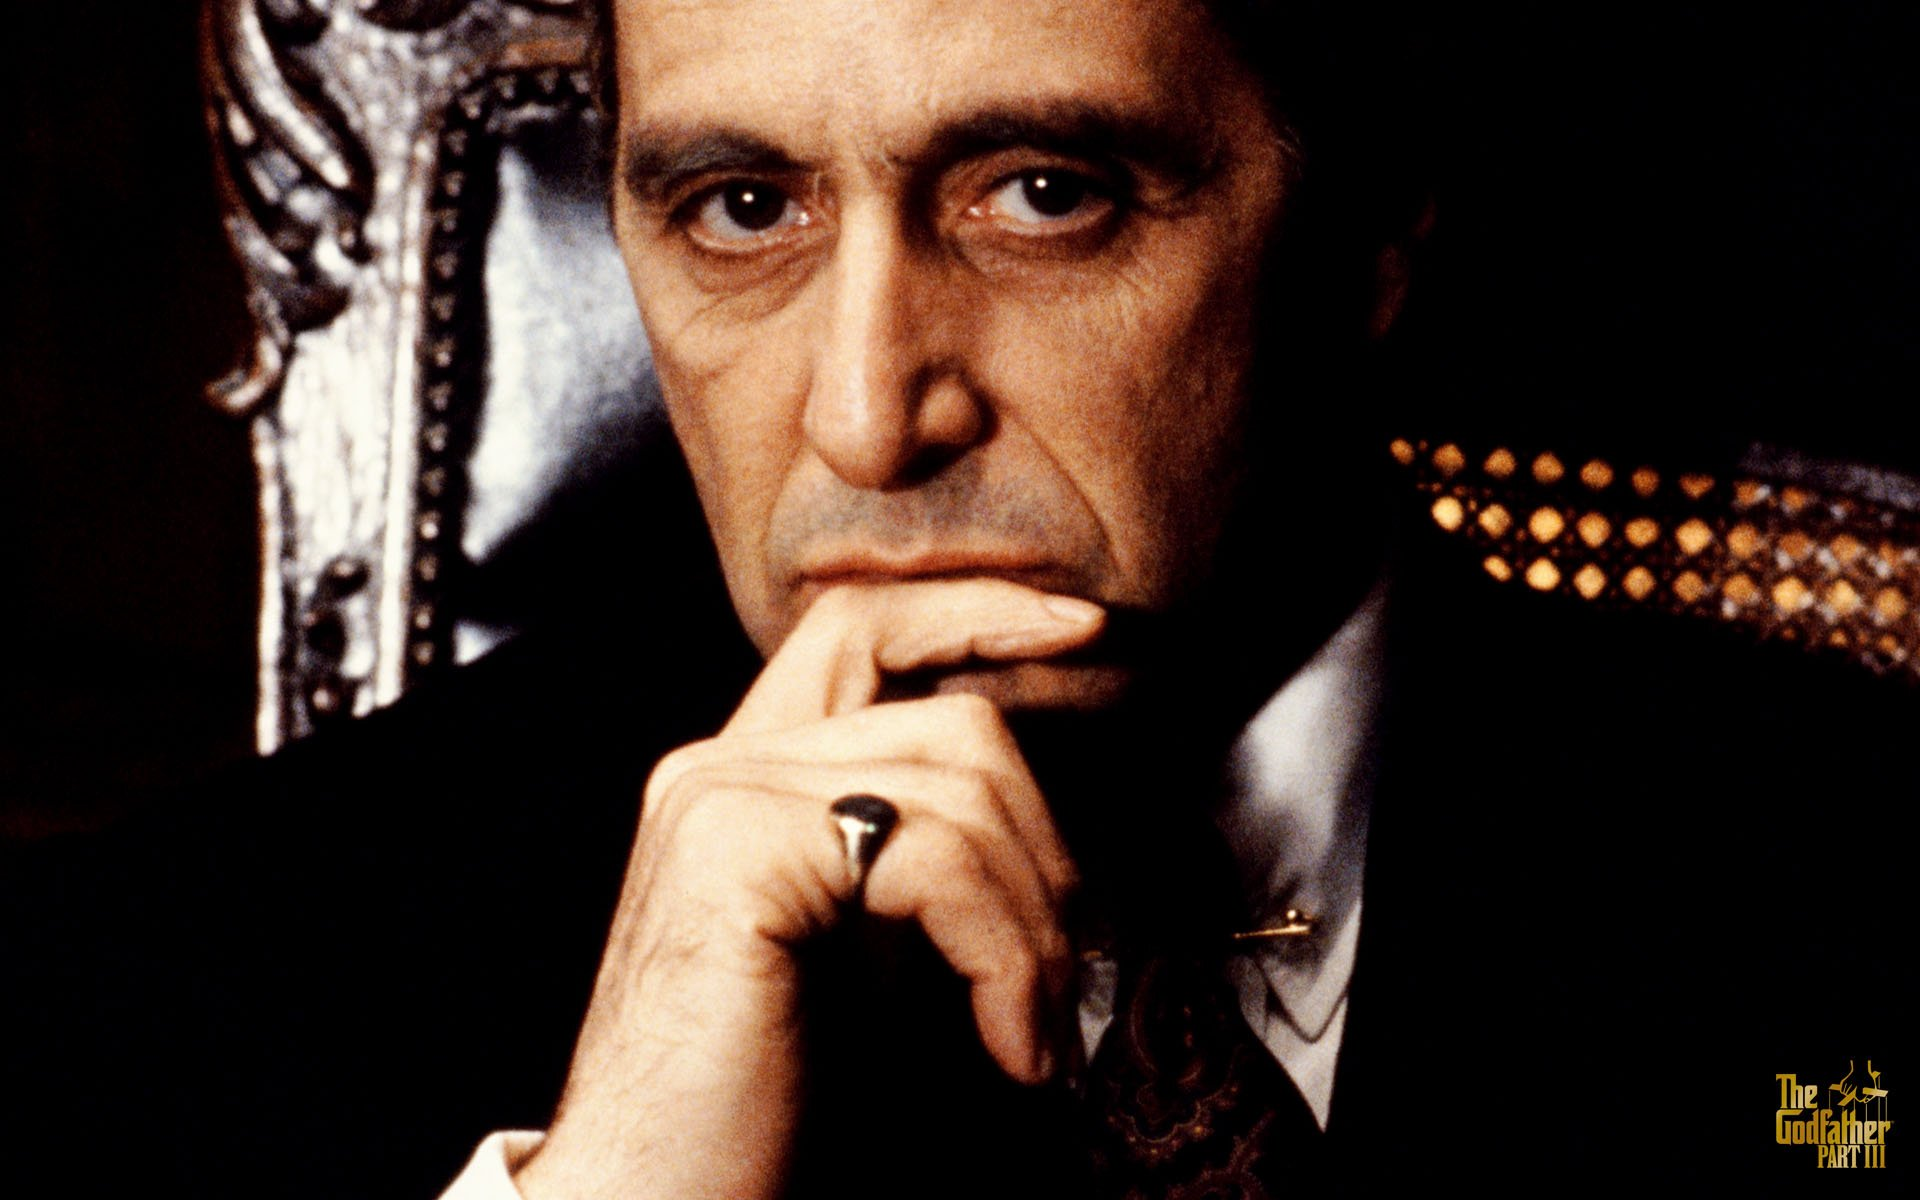 The Godfather Part III...